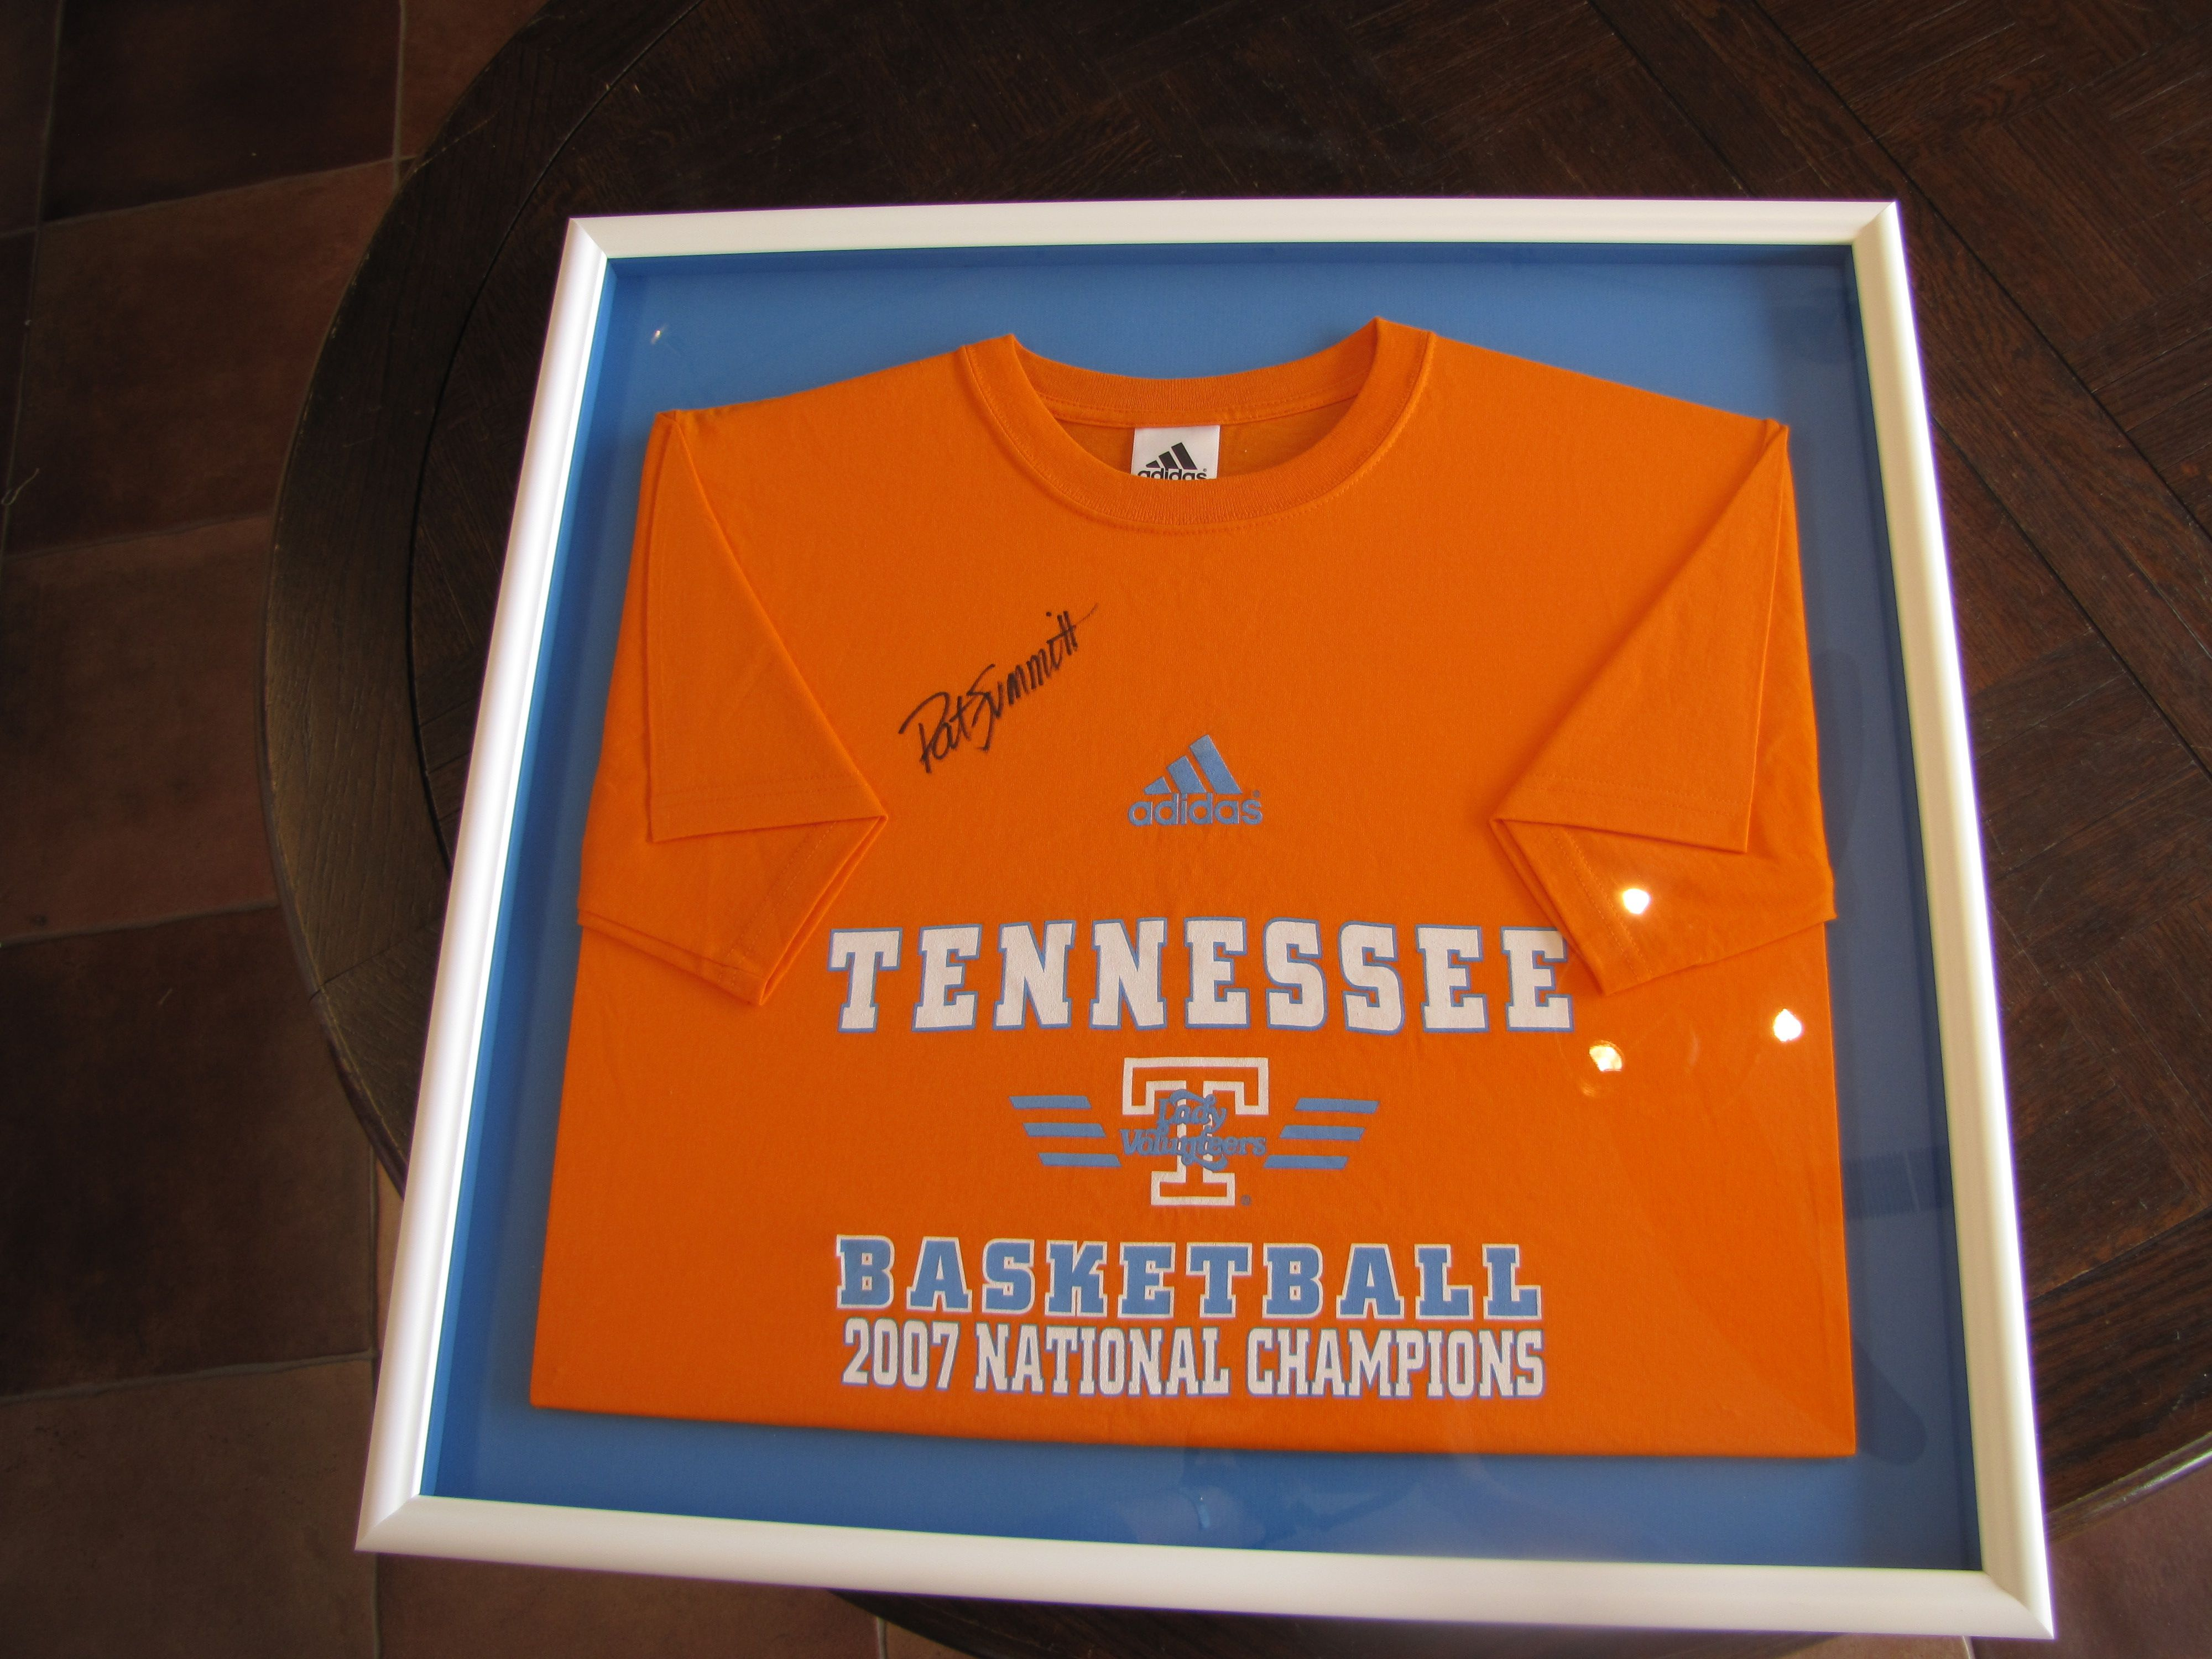 2007 Tennessee Basketball T-Shirt signed by Pat Summitt | Frames by ...